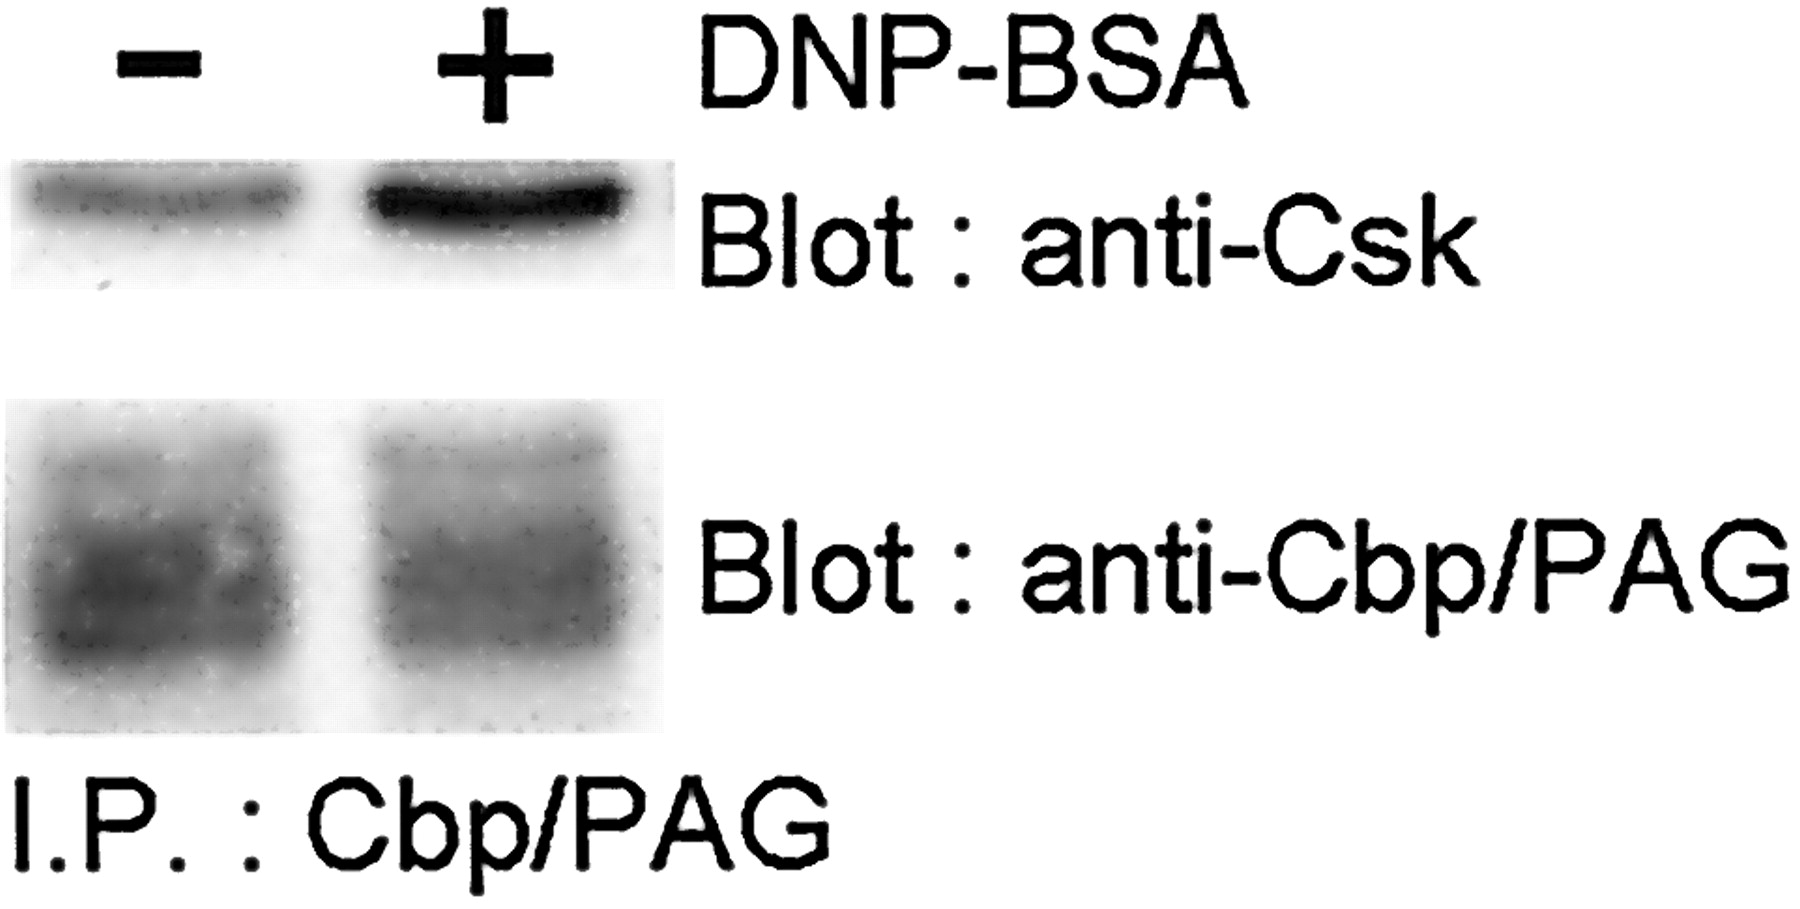 Cutting Edge: Transmembrane Phosphoprotein Csk-Binding Protein